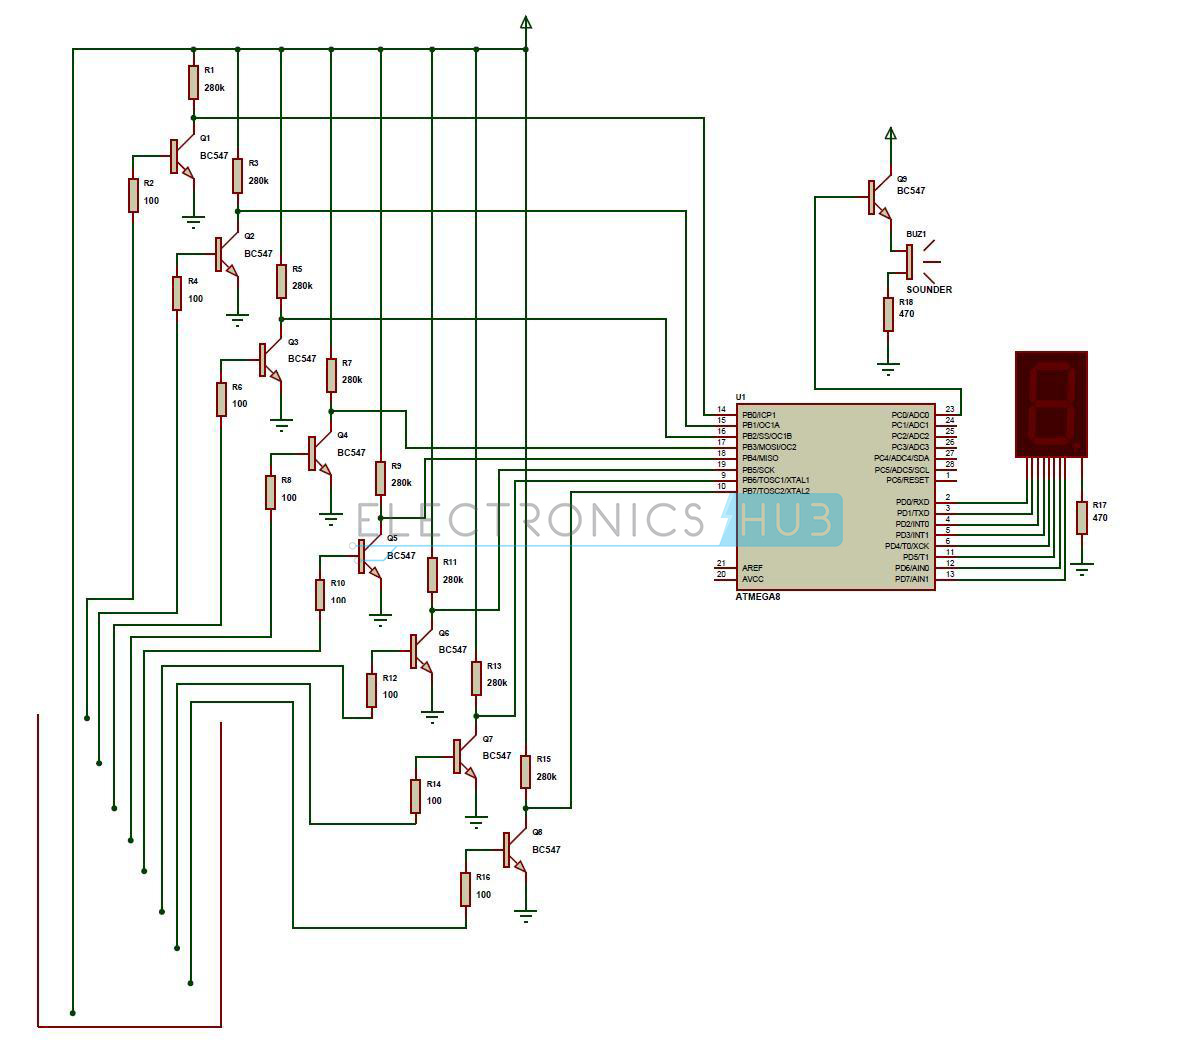 water level indicator project circuit working using avr rh electronicshub org circuit diagram of water level indicator with seven segment display simple water level indicator alarm circuit diagram